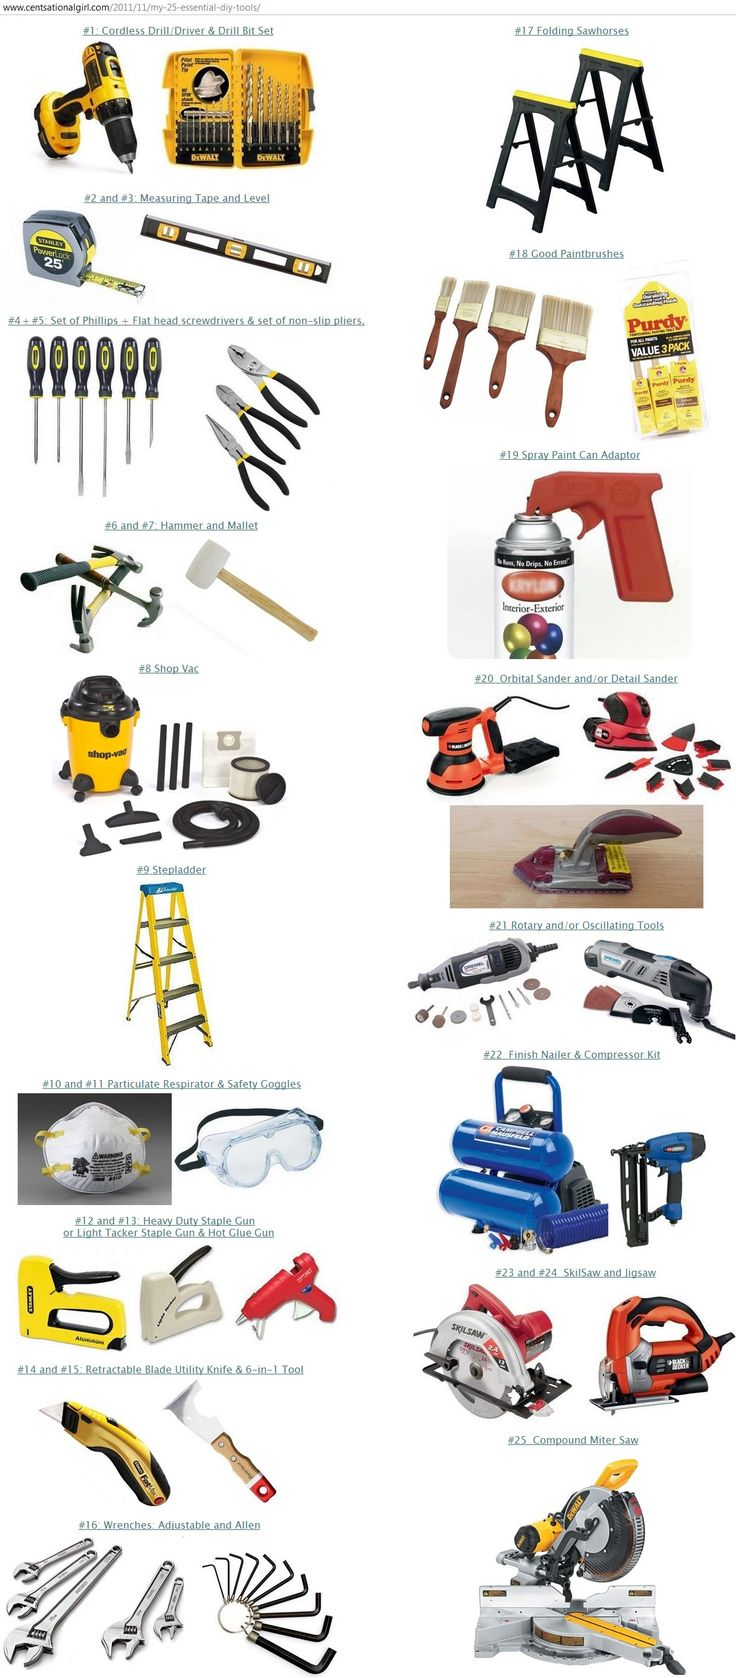 Diy Blogger Centsational Girl Lists Her 25 Essential Tools For Home Projects At Http